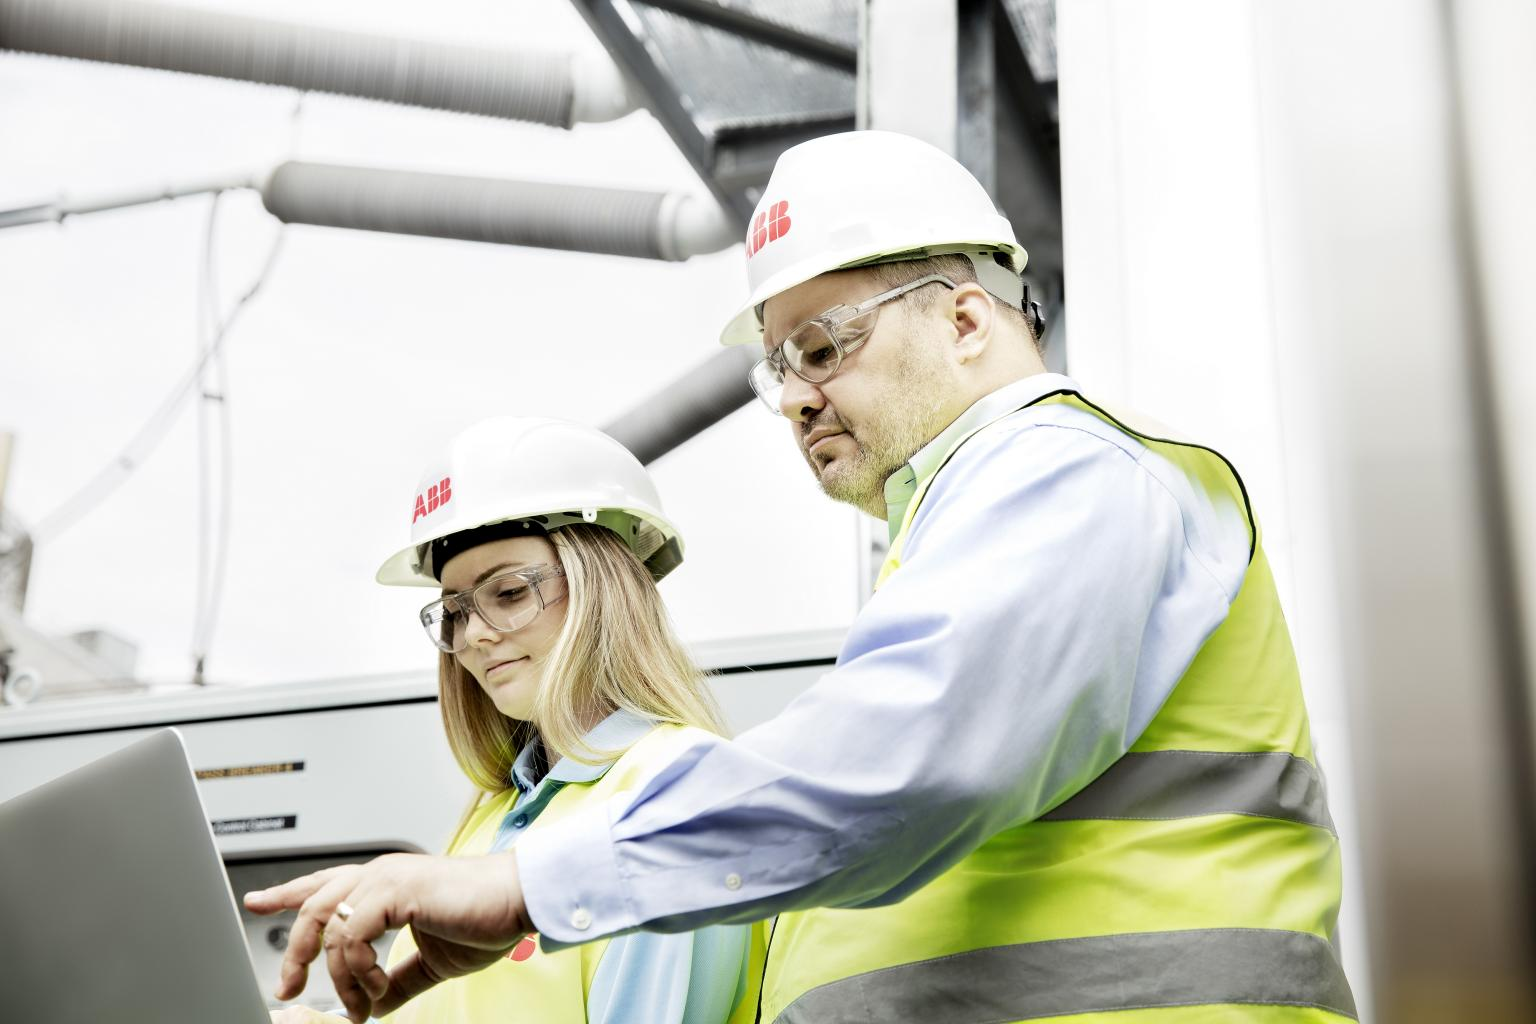 ABB's analysis flagged up the need to provide clear guidance and standards